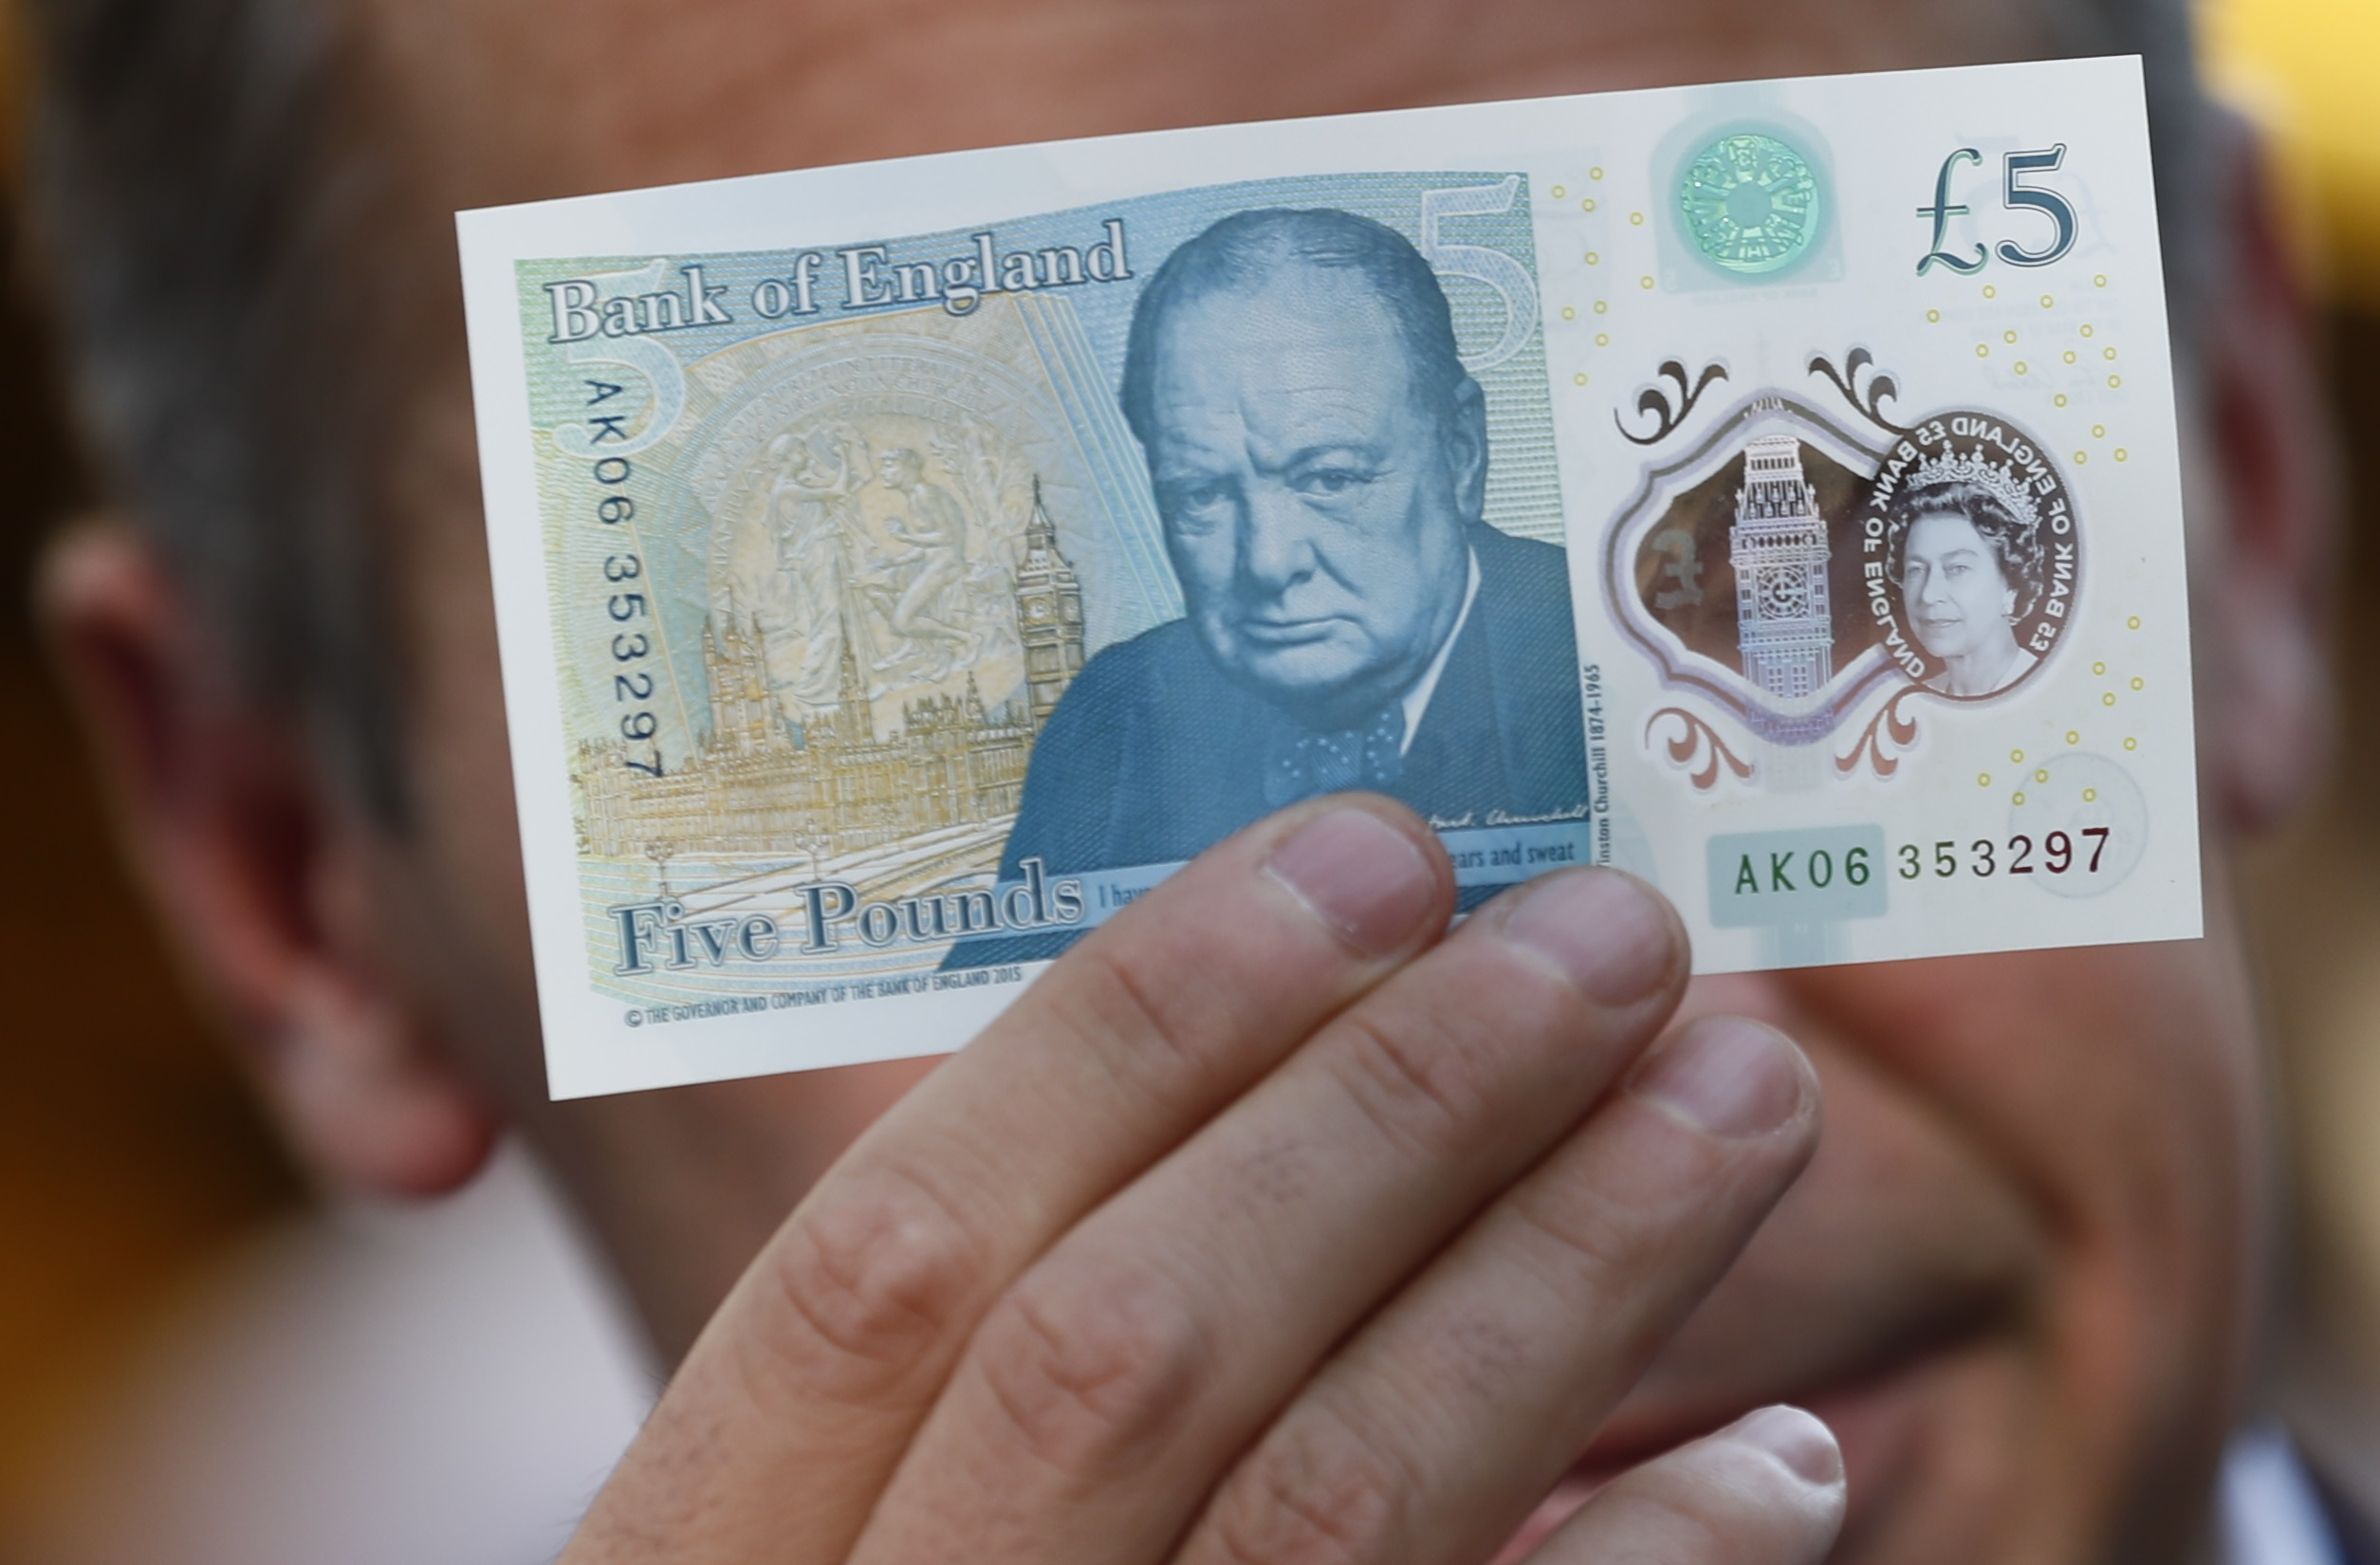 Canadians tell Brits to man up after complaints of getting 'Winstoned' by new fivers